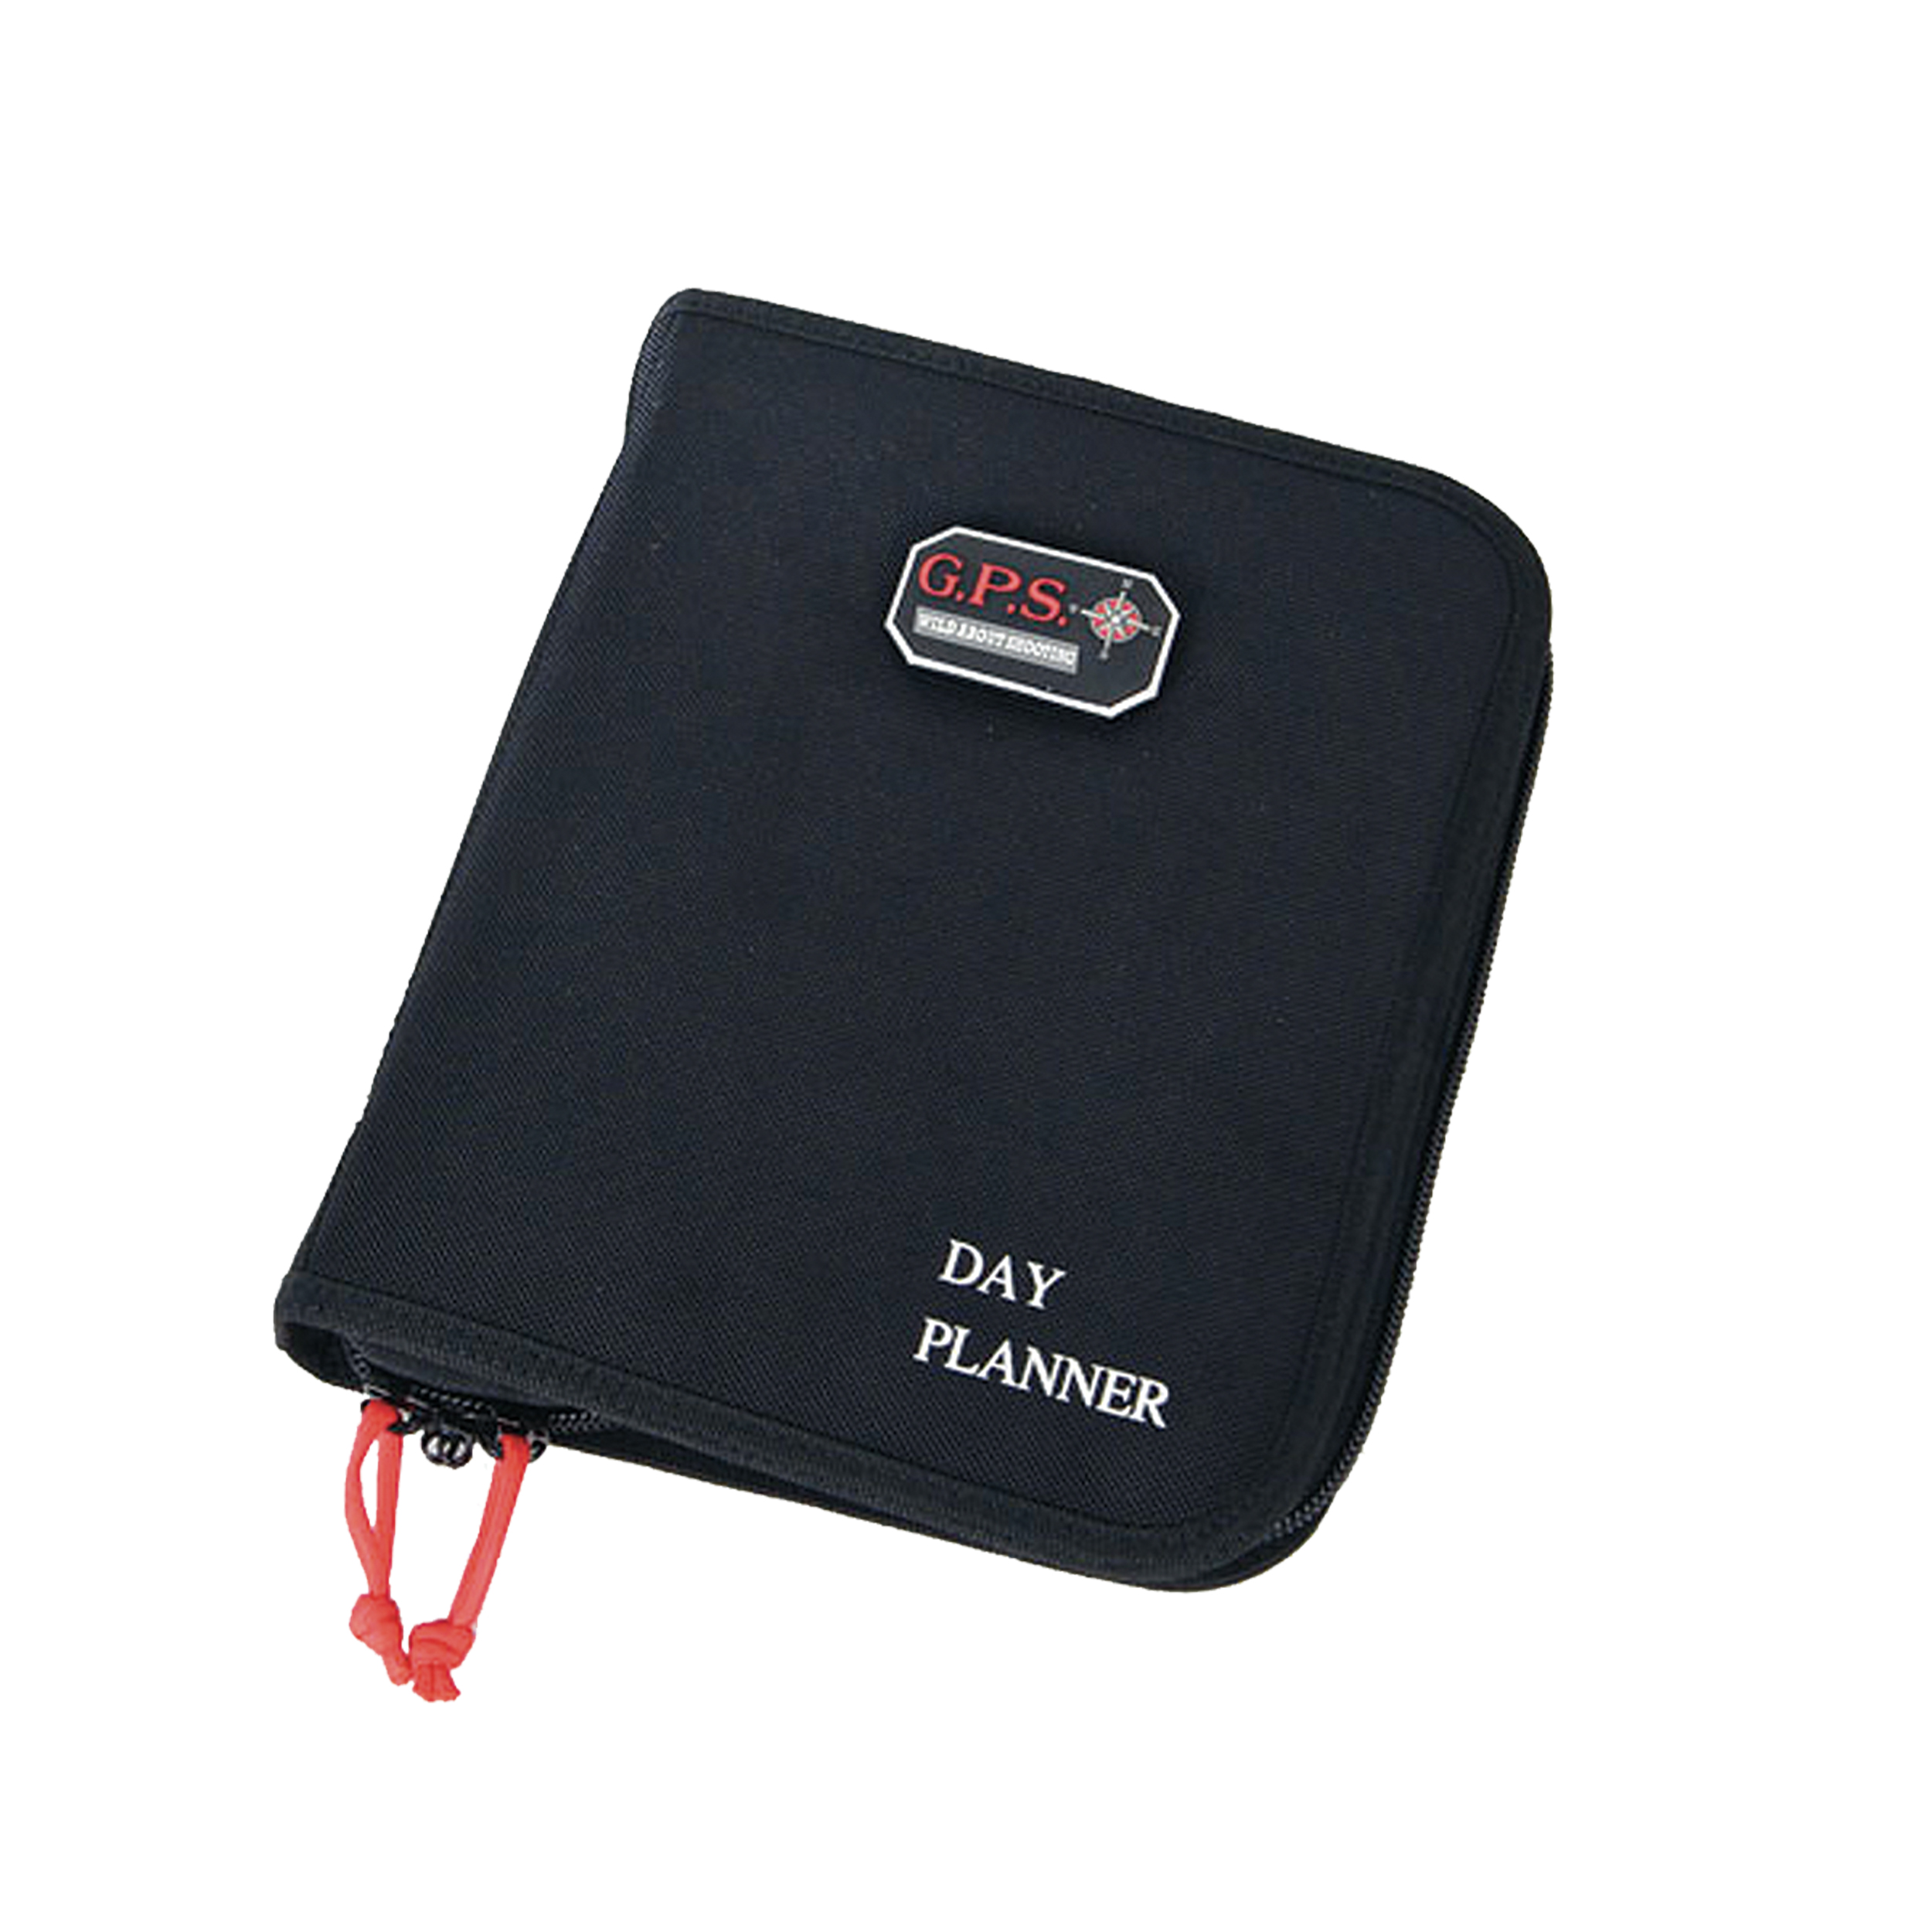 The GPS: Wild About Shooting Large Day Planner allows handgun enthusiasts and CCW holders to keep a weapon within reach. The planner provides secure storage for 1 compact pistol and 2 pistol magazines...